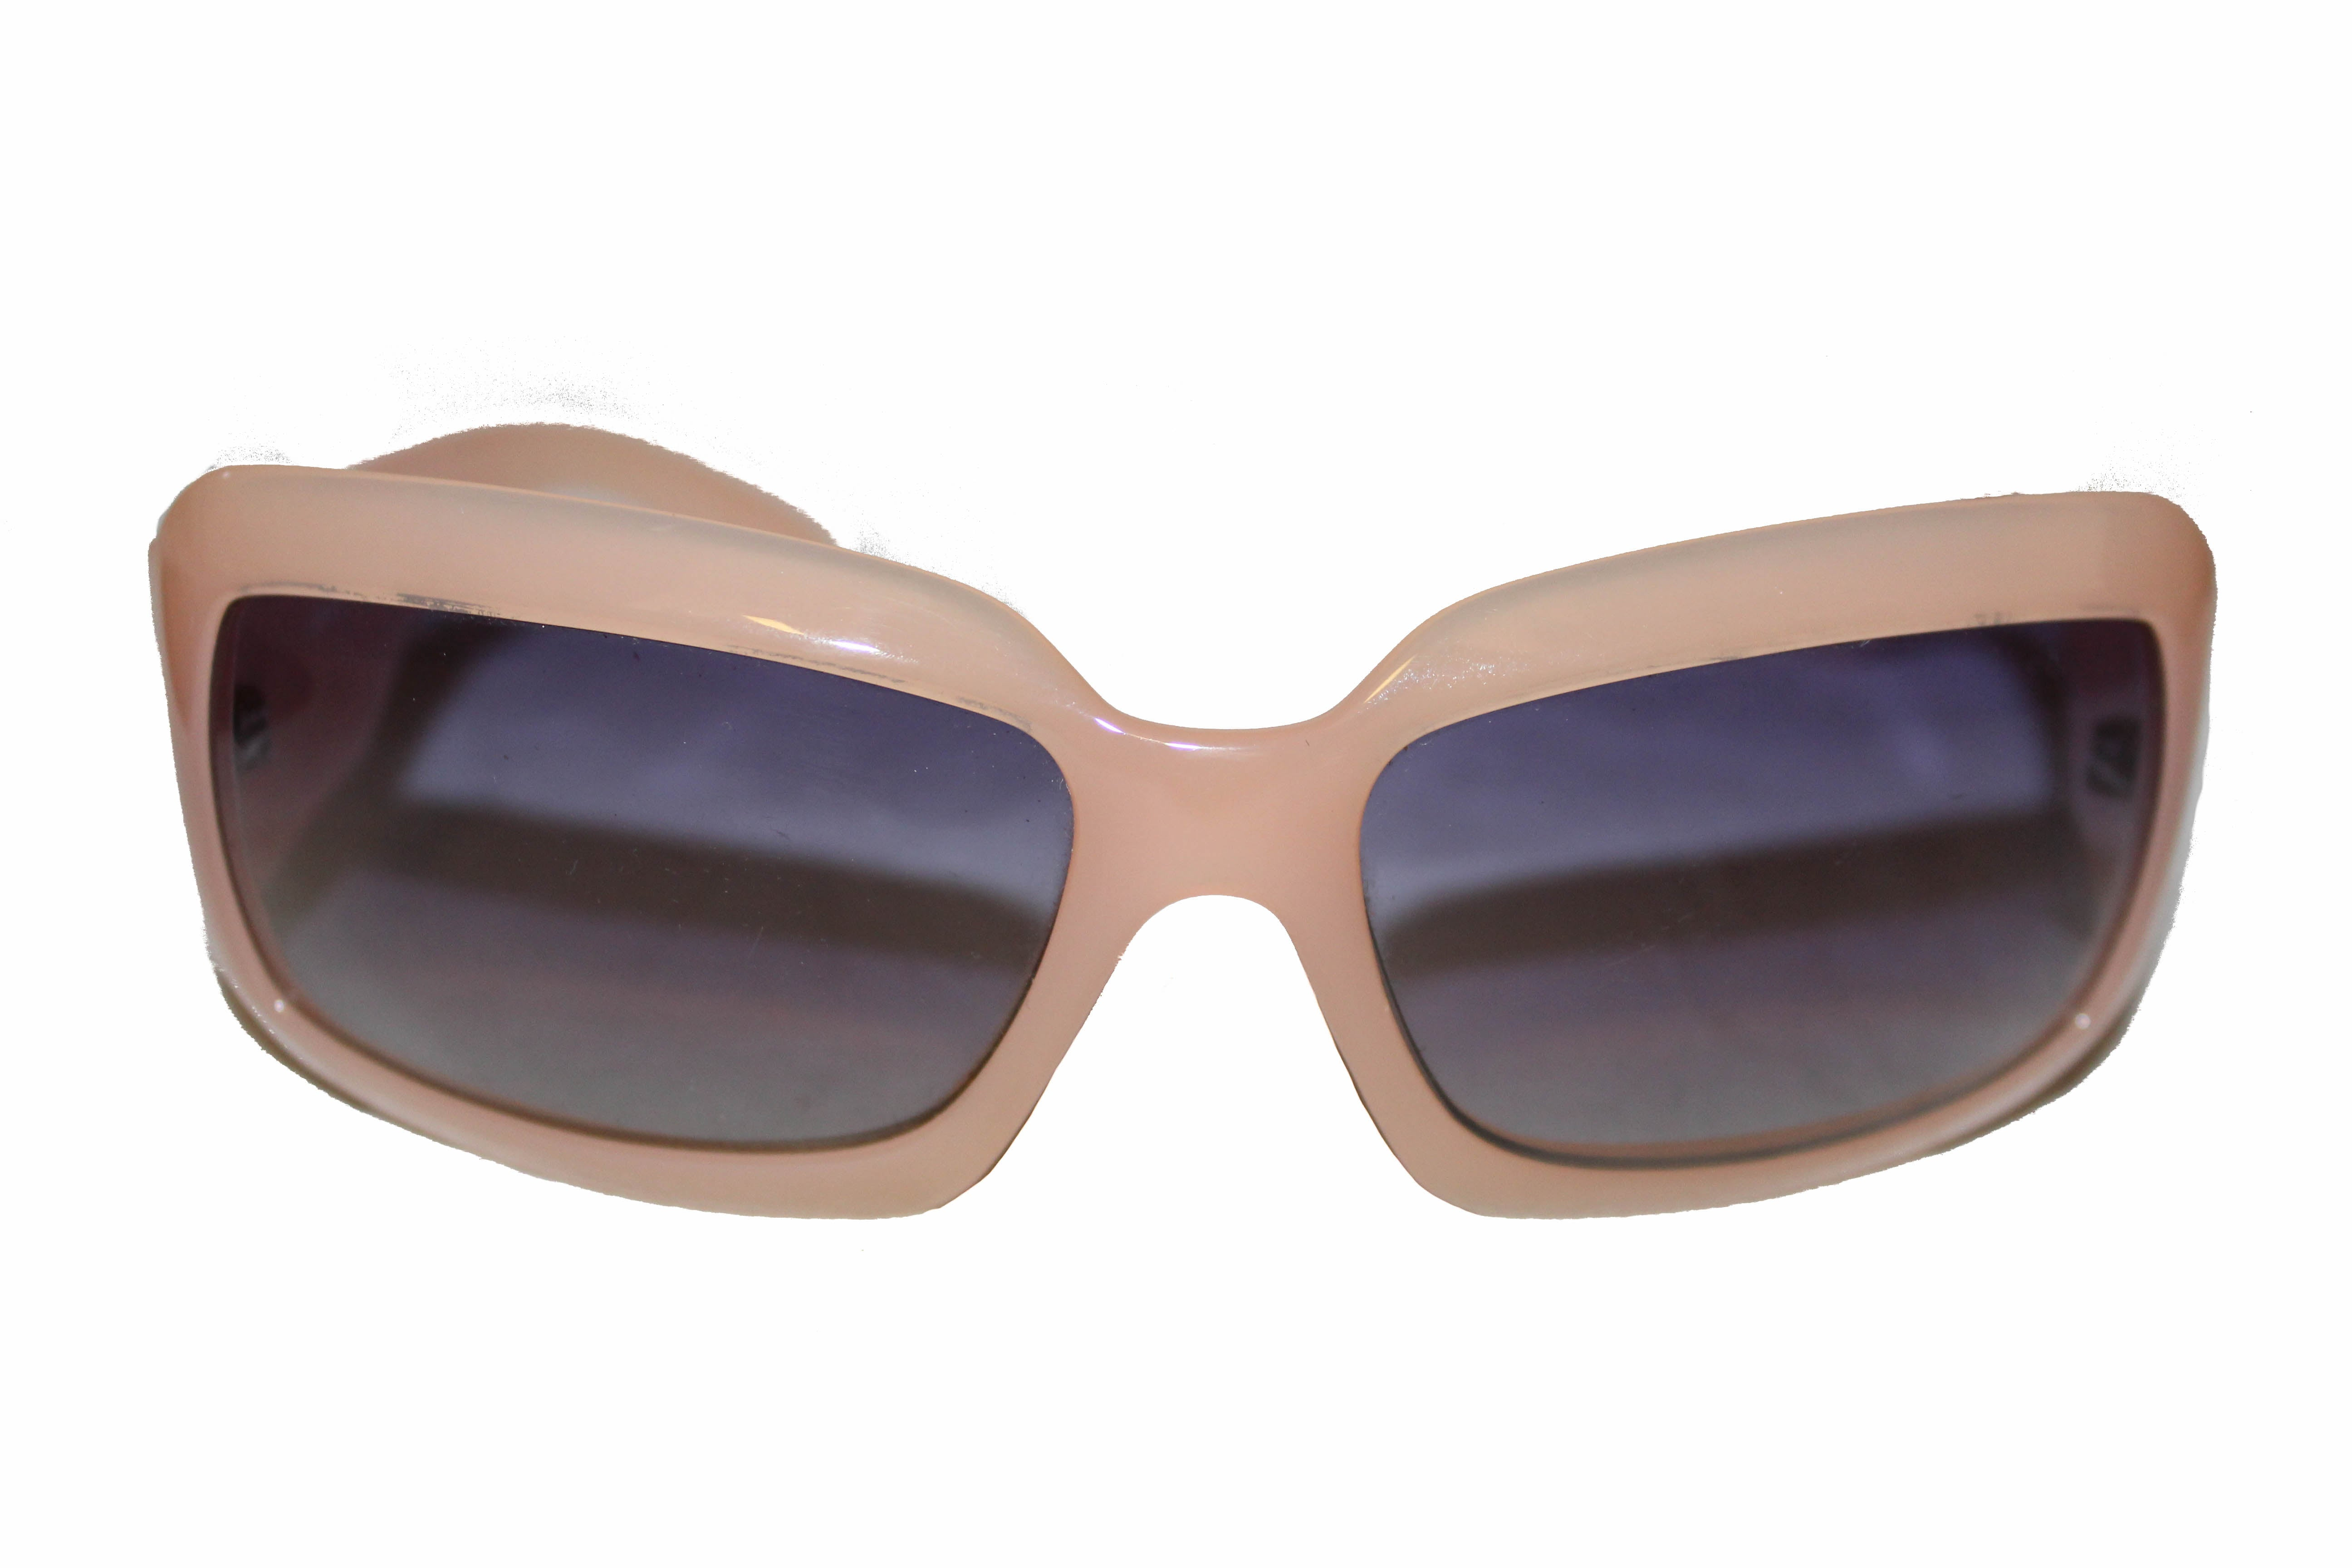 Authentic Chanel Light Pink Frame CC Mother of Pearl Sunglasses 5076-H